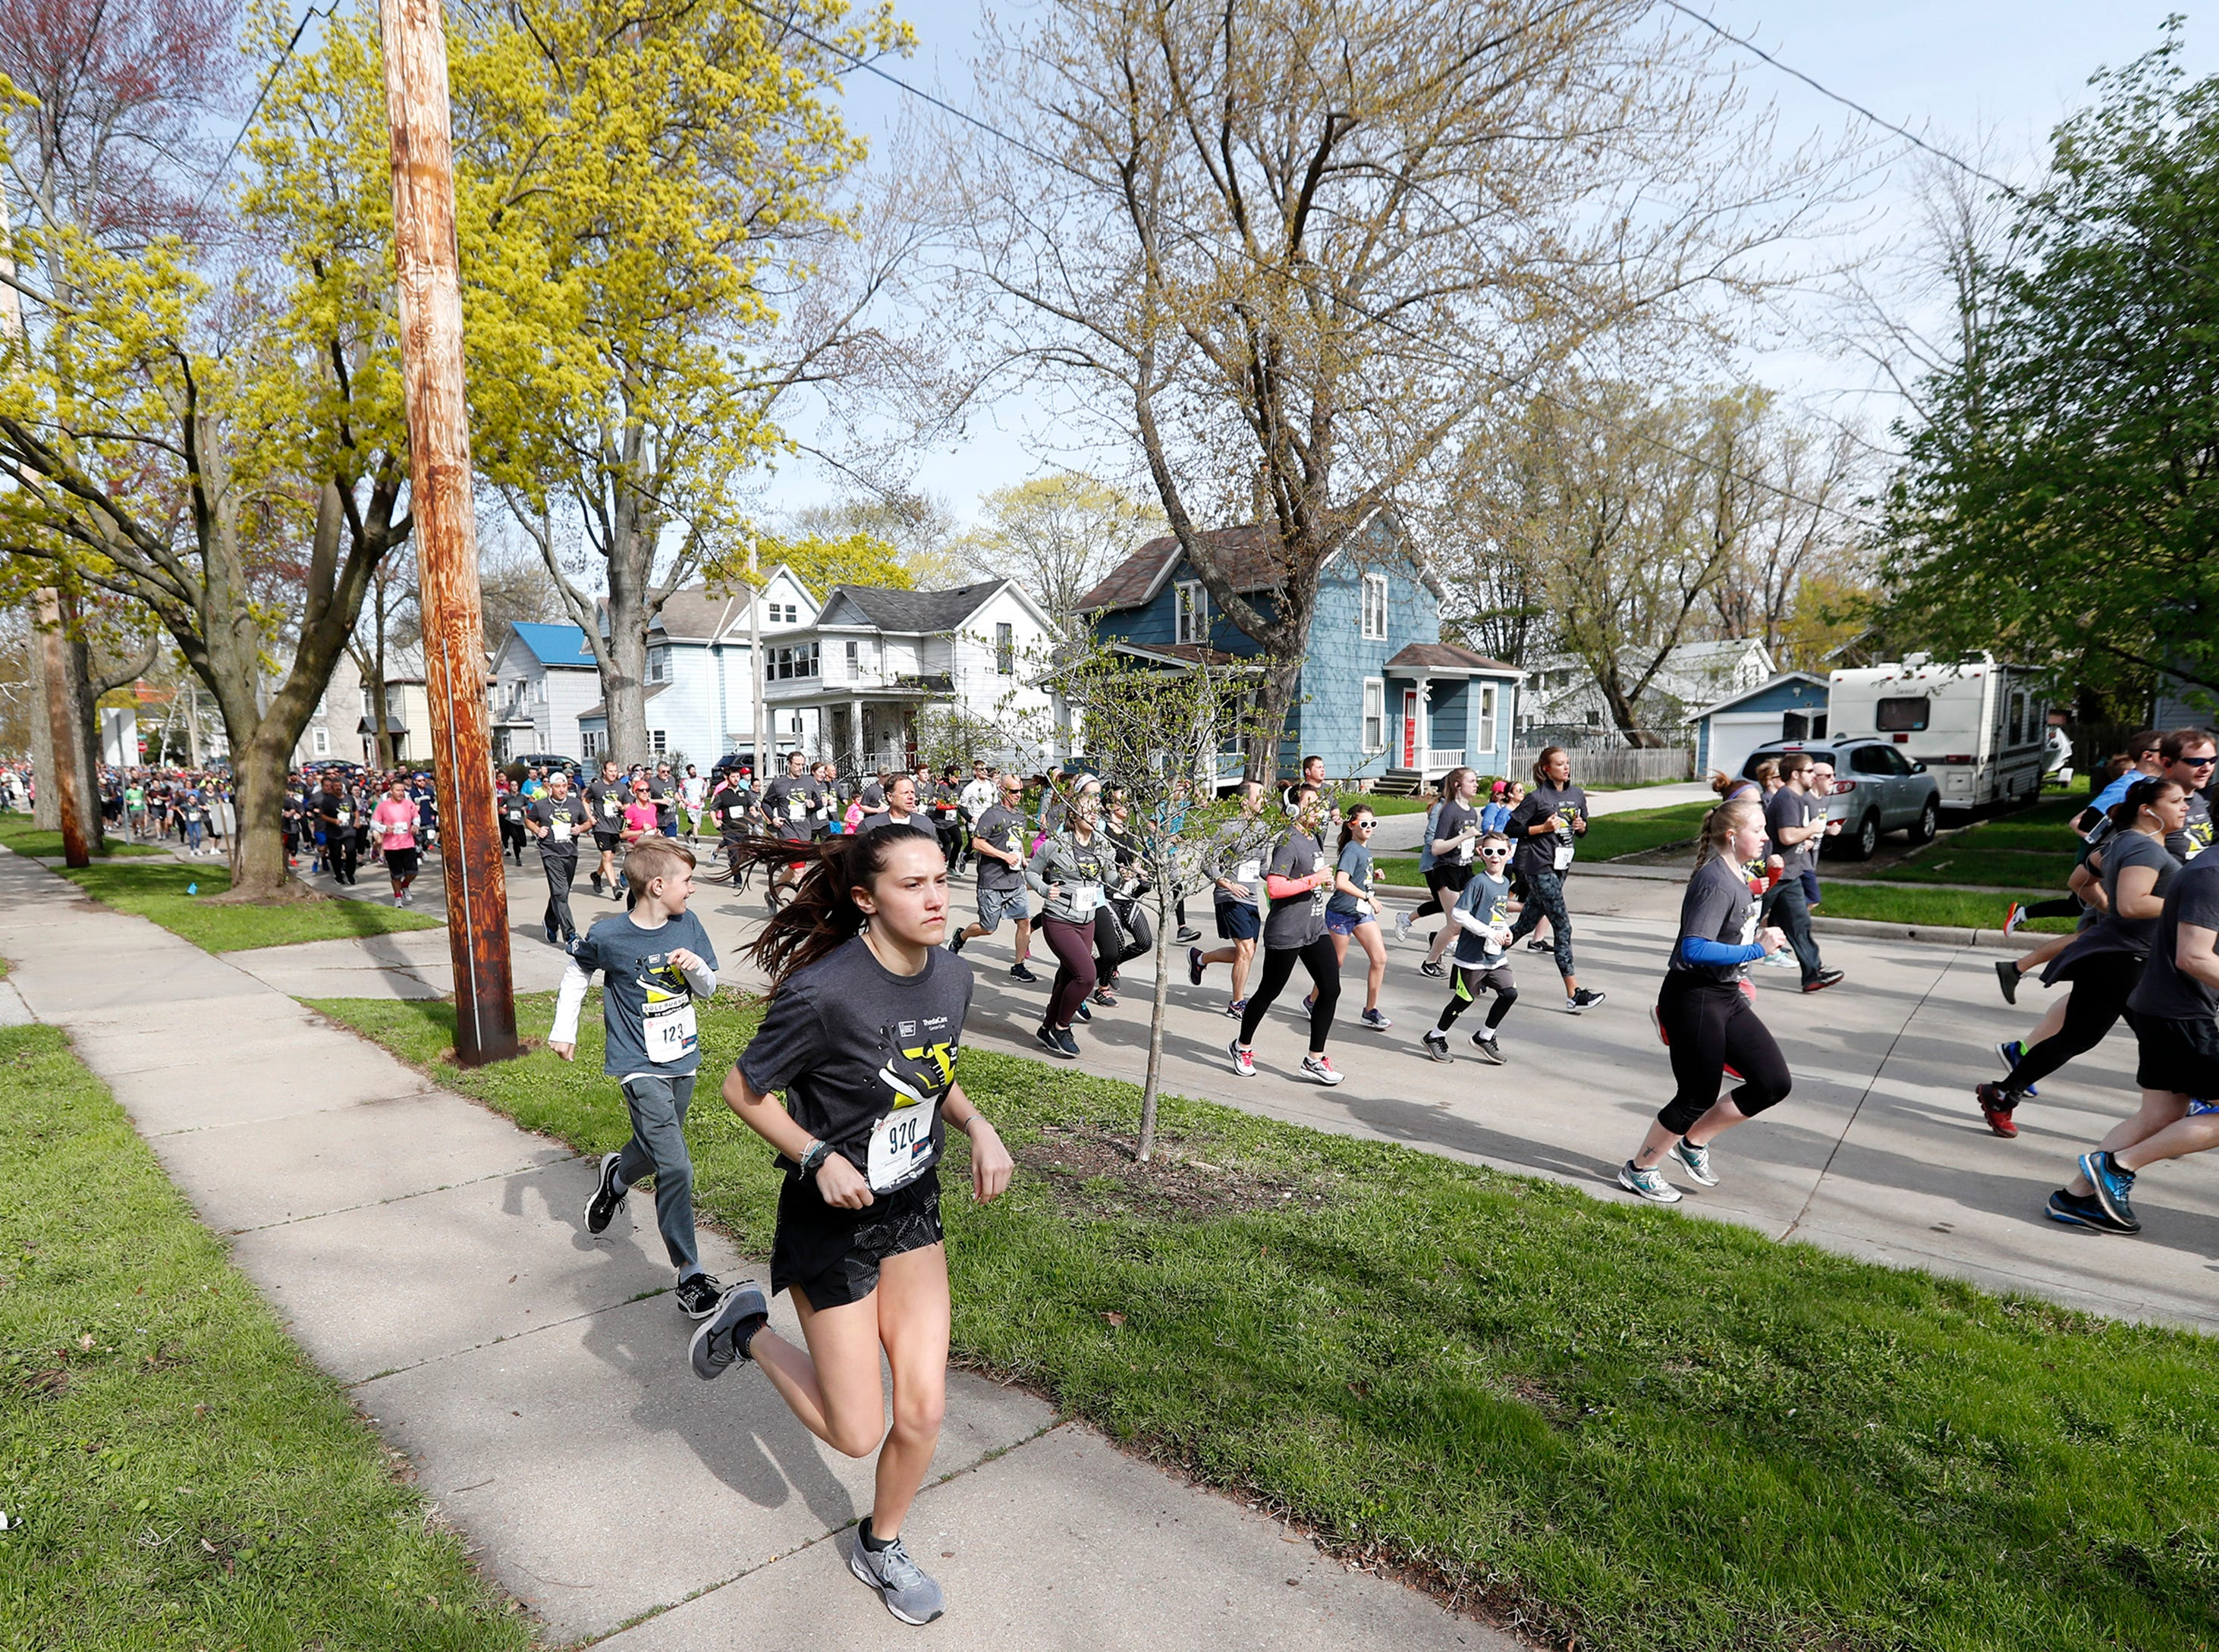 Runners take to the sidewalk just past the starting line of the Sole Burner 5K Walk-Run Saturday, May 11, 2019, in Appleton, Wis. Danny Damiani/USA TODAY NETWORK-Wisconsin